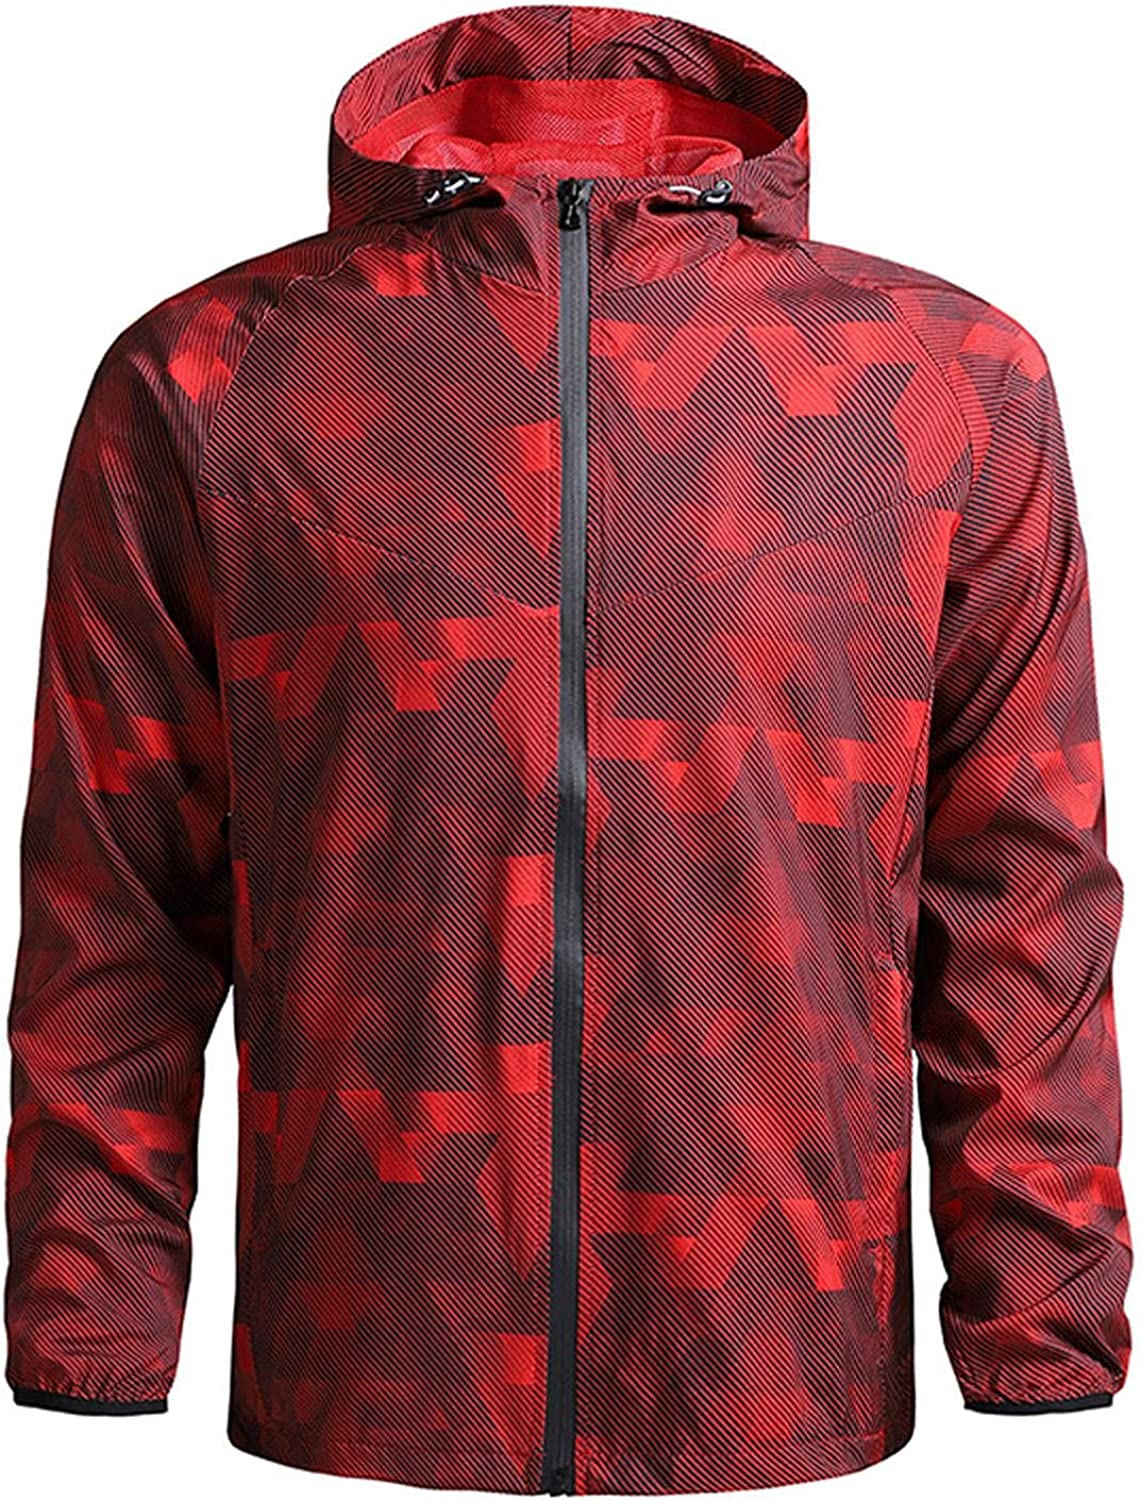 Huangse Mens Autumn Winter Jacket Casual Printed Slim Fit Thin Lightweight Outerwear Sportswear Bomber Jacket Coat